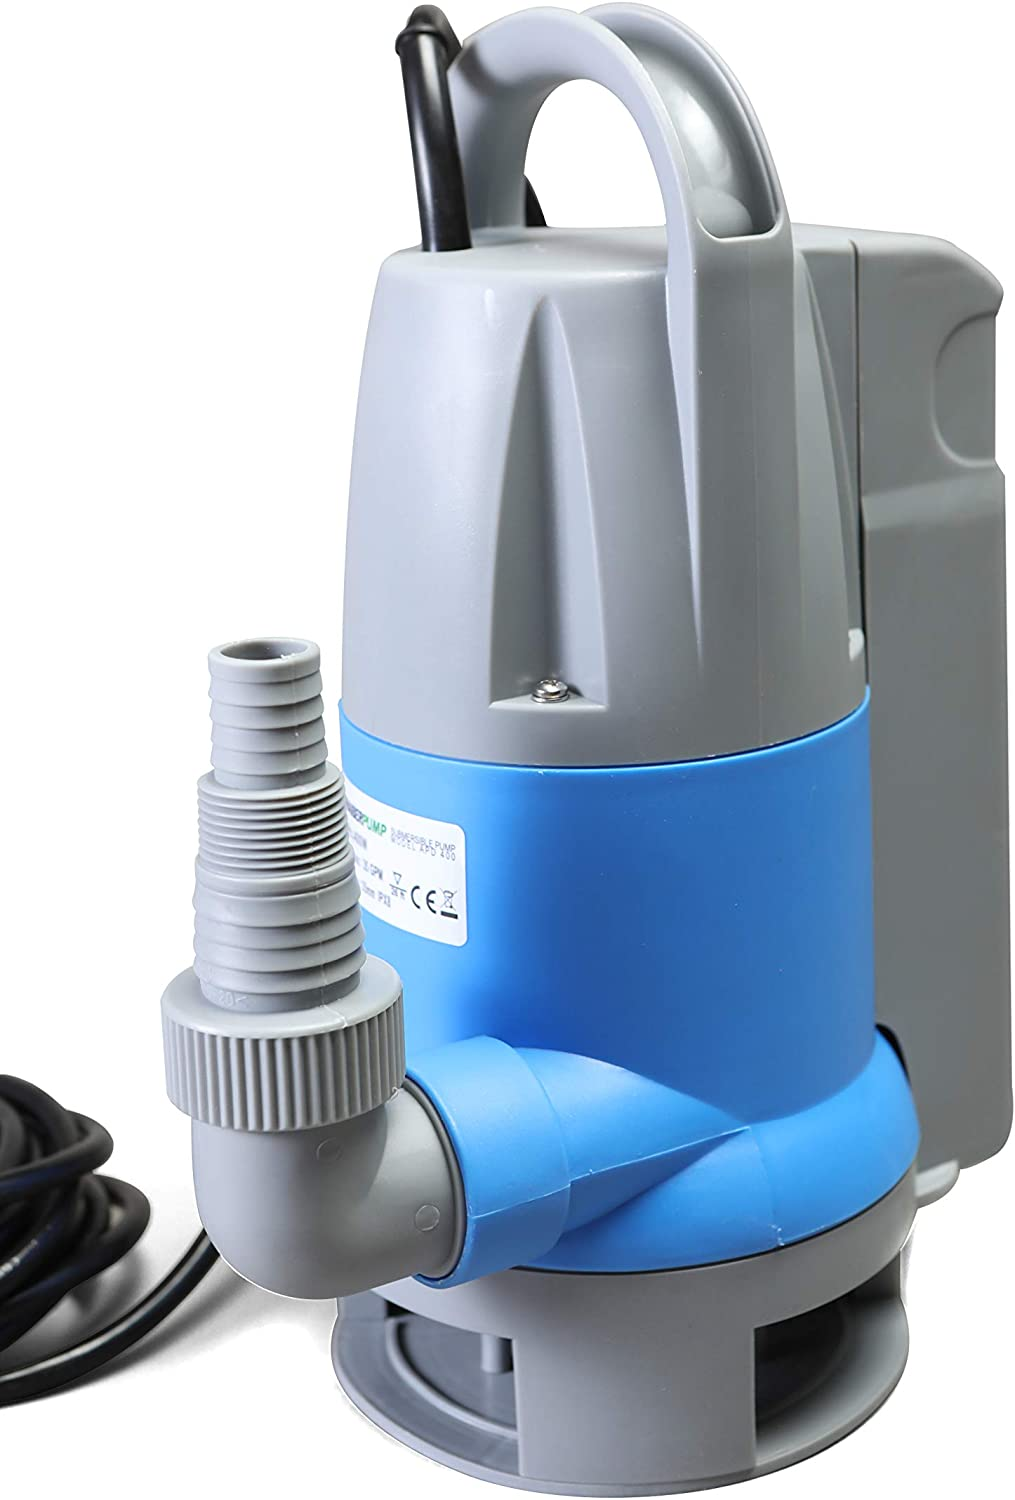 Submersible Clean/Dirty Water Sump Pump 1/2hp with built in Automatic ON/OFF (no external float switch needed) 2100GPH, 16'Head, Thermal Protector, Copper Winding - Schraiberpump